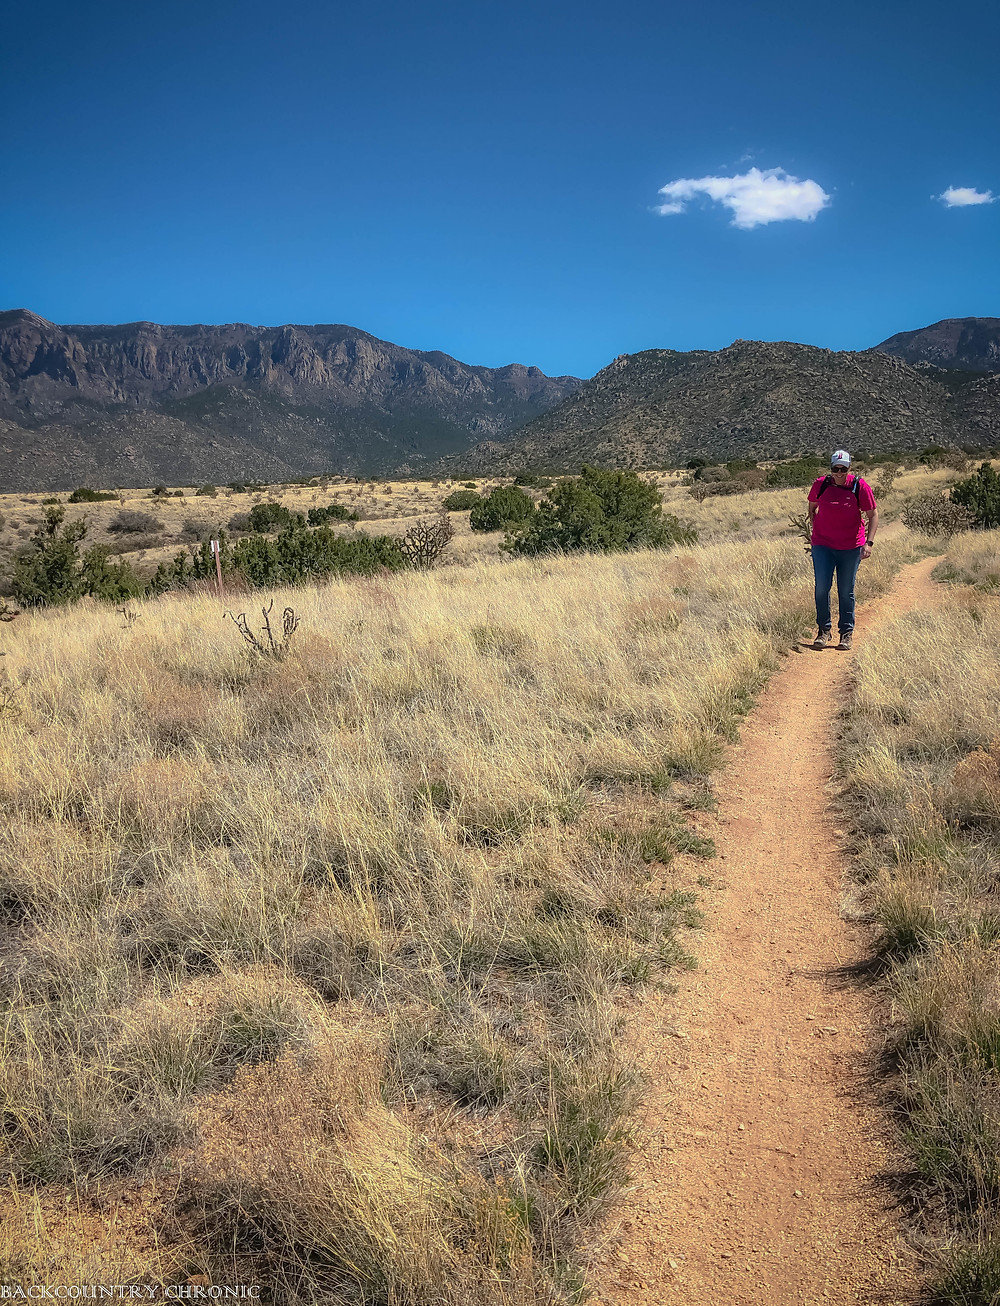 A trail in the Albuquerque foothills.